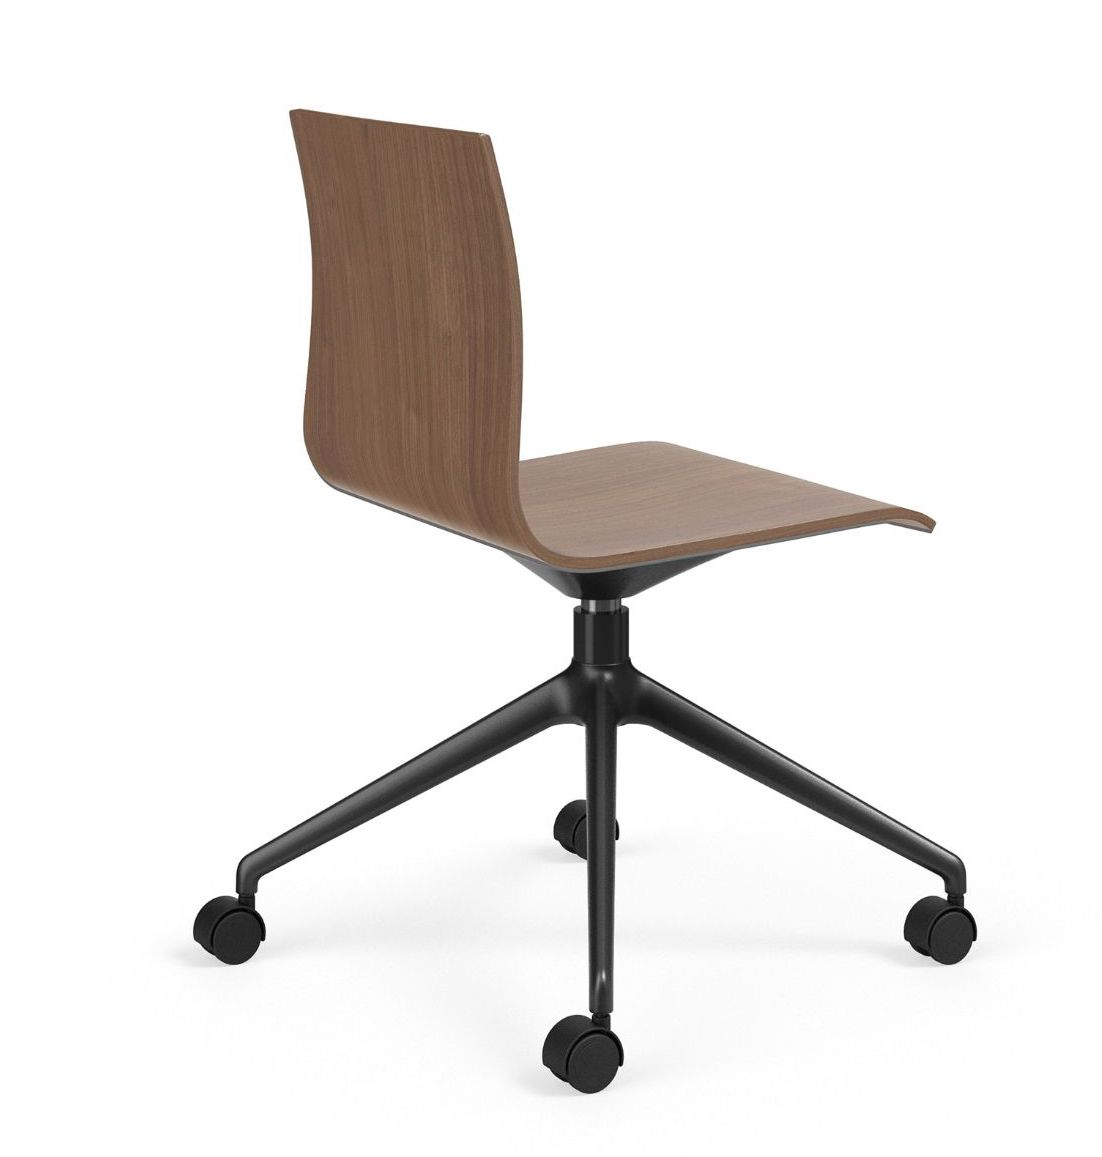 voz armless swivel chair back view